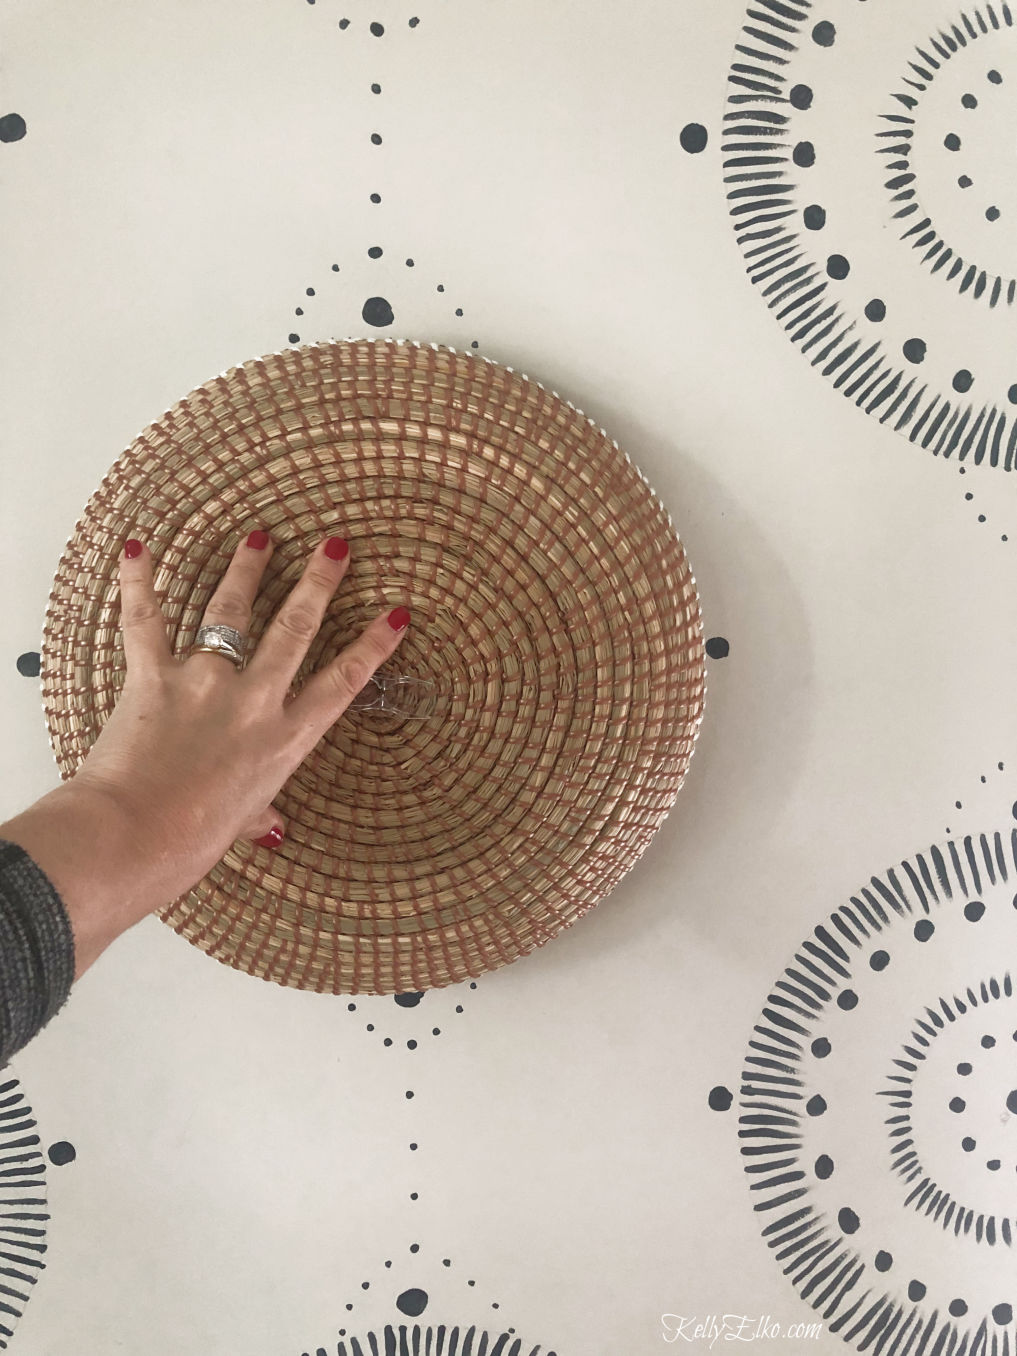 How to paint a repeating wall mural and get the look of wallpaper at a fraction of the cost kellyelko.com #wallmural #paintingtips #painttips #wallpaint #diypaint #diydecor #diyideas #serena&lily #diydecor #kellyelko